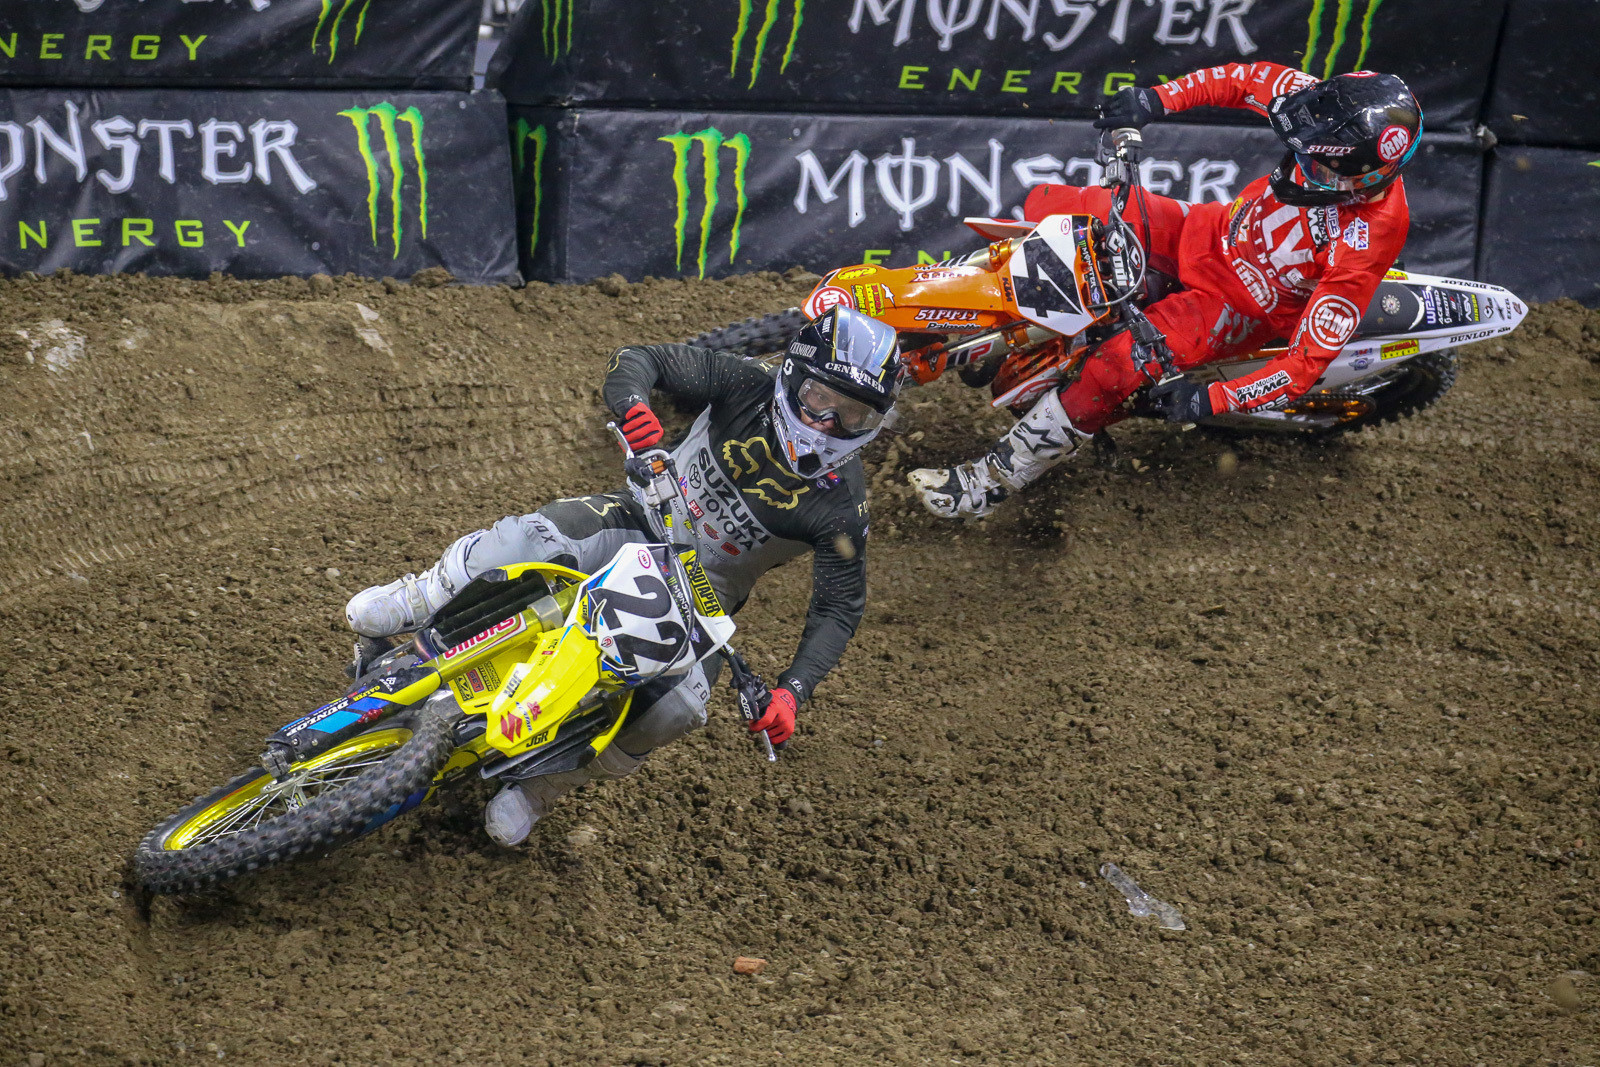 The crowd perked up noticeably when Chad Reed went by Blake Baggett into the second spot.